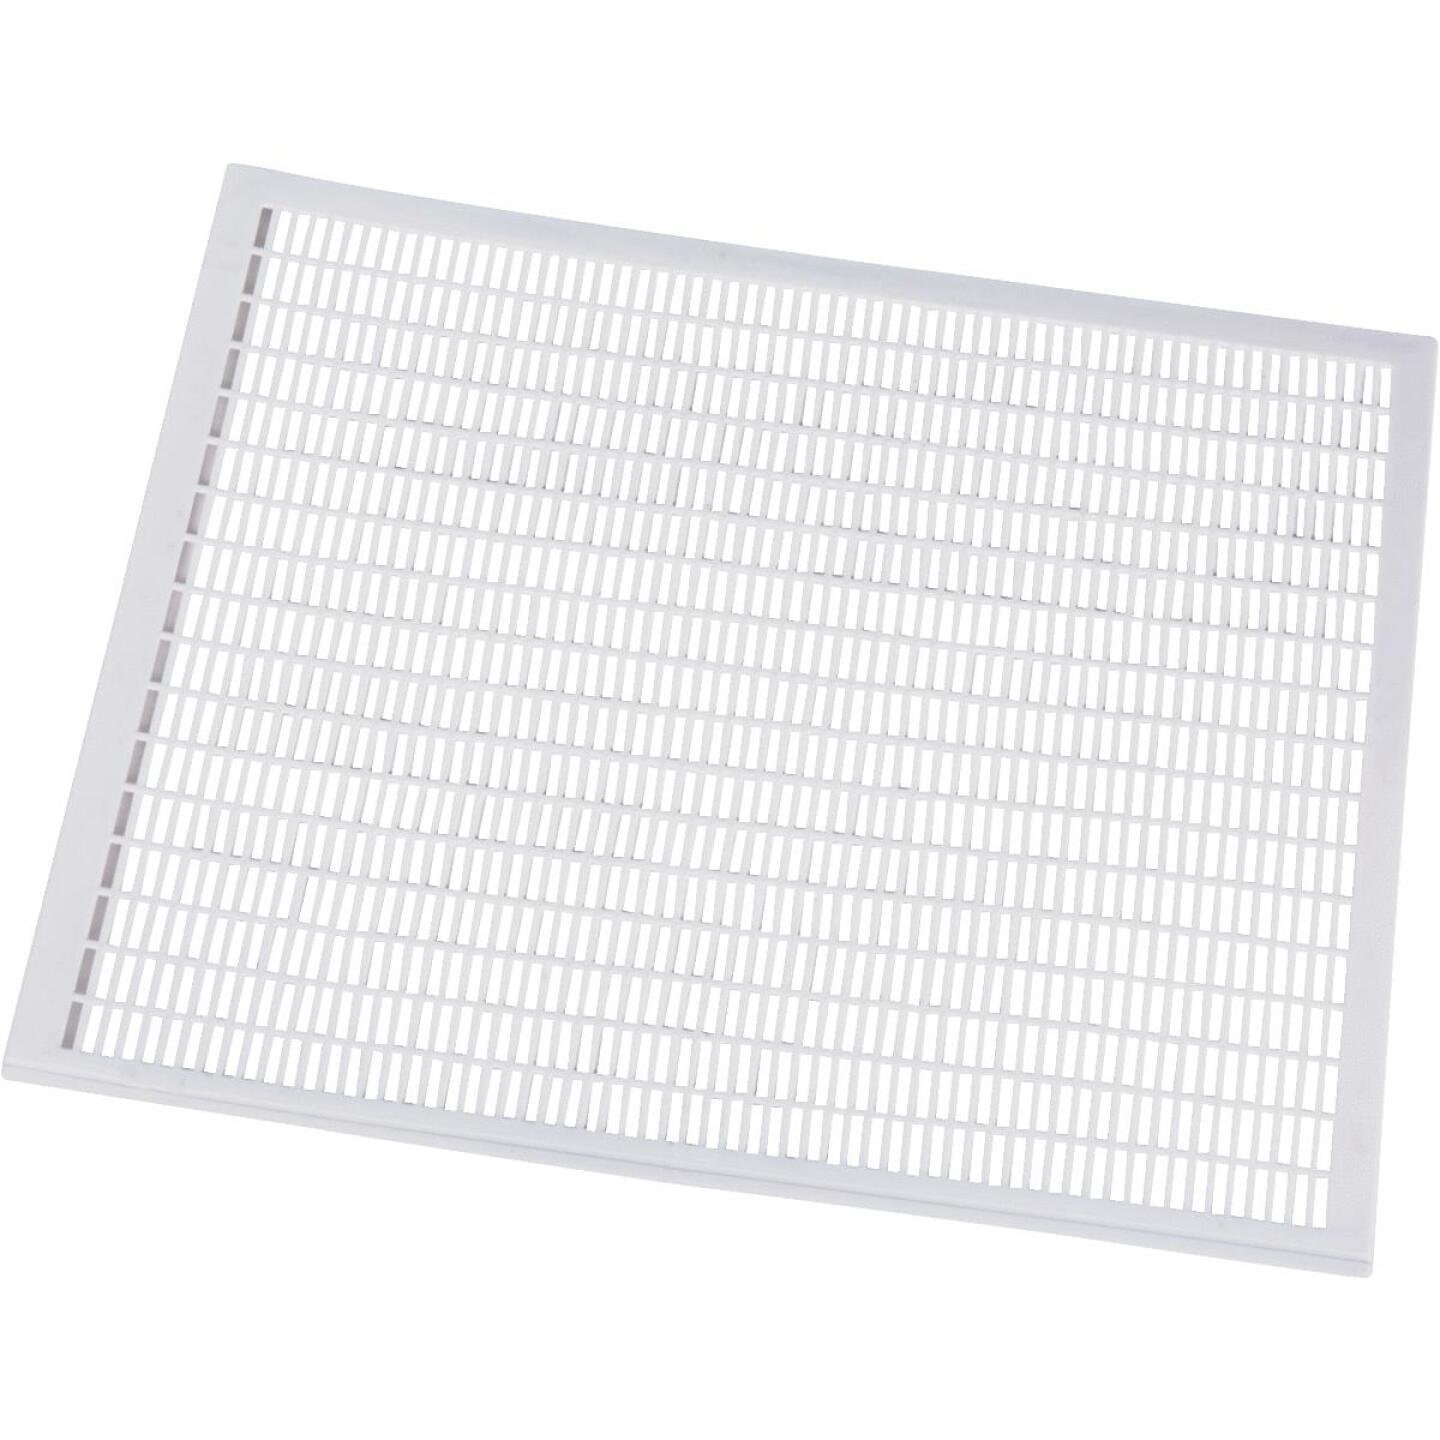 Little Giant 16.5 In. W. x 0.125 In. H. x 20 In. L. Plastic Queen Excluder Beehive Tool Image 1